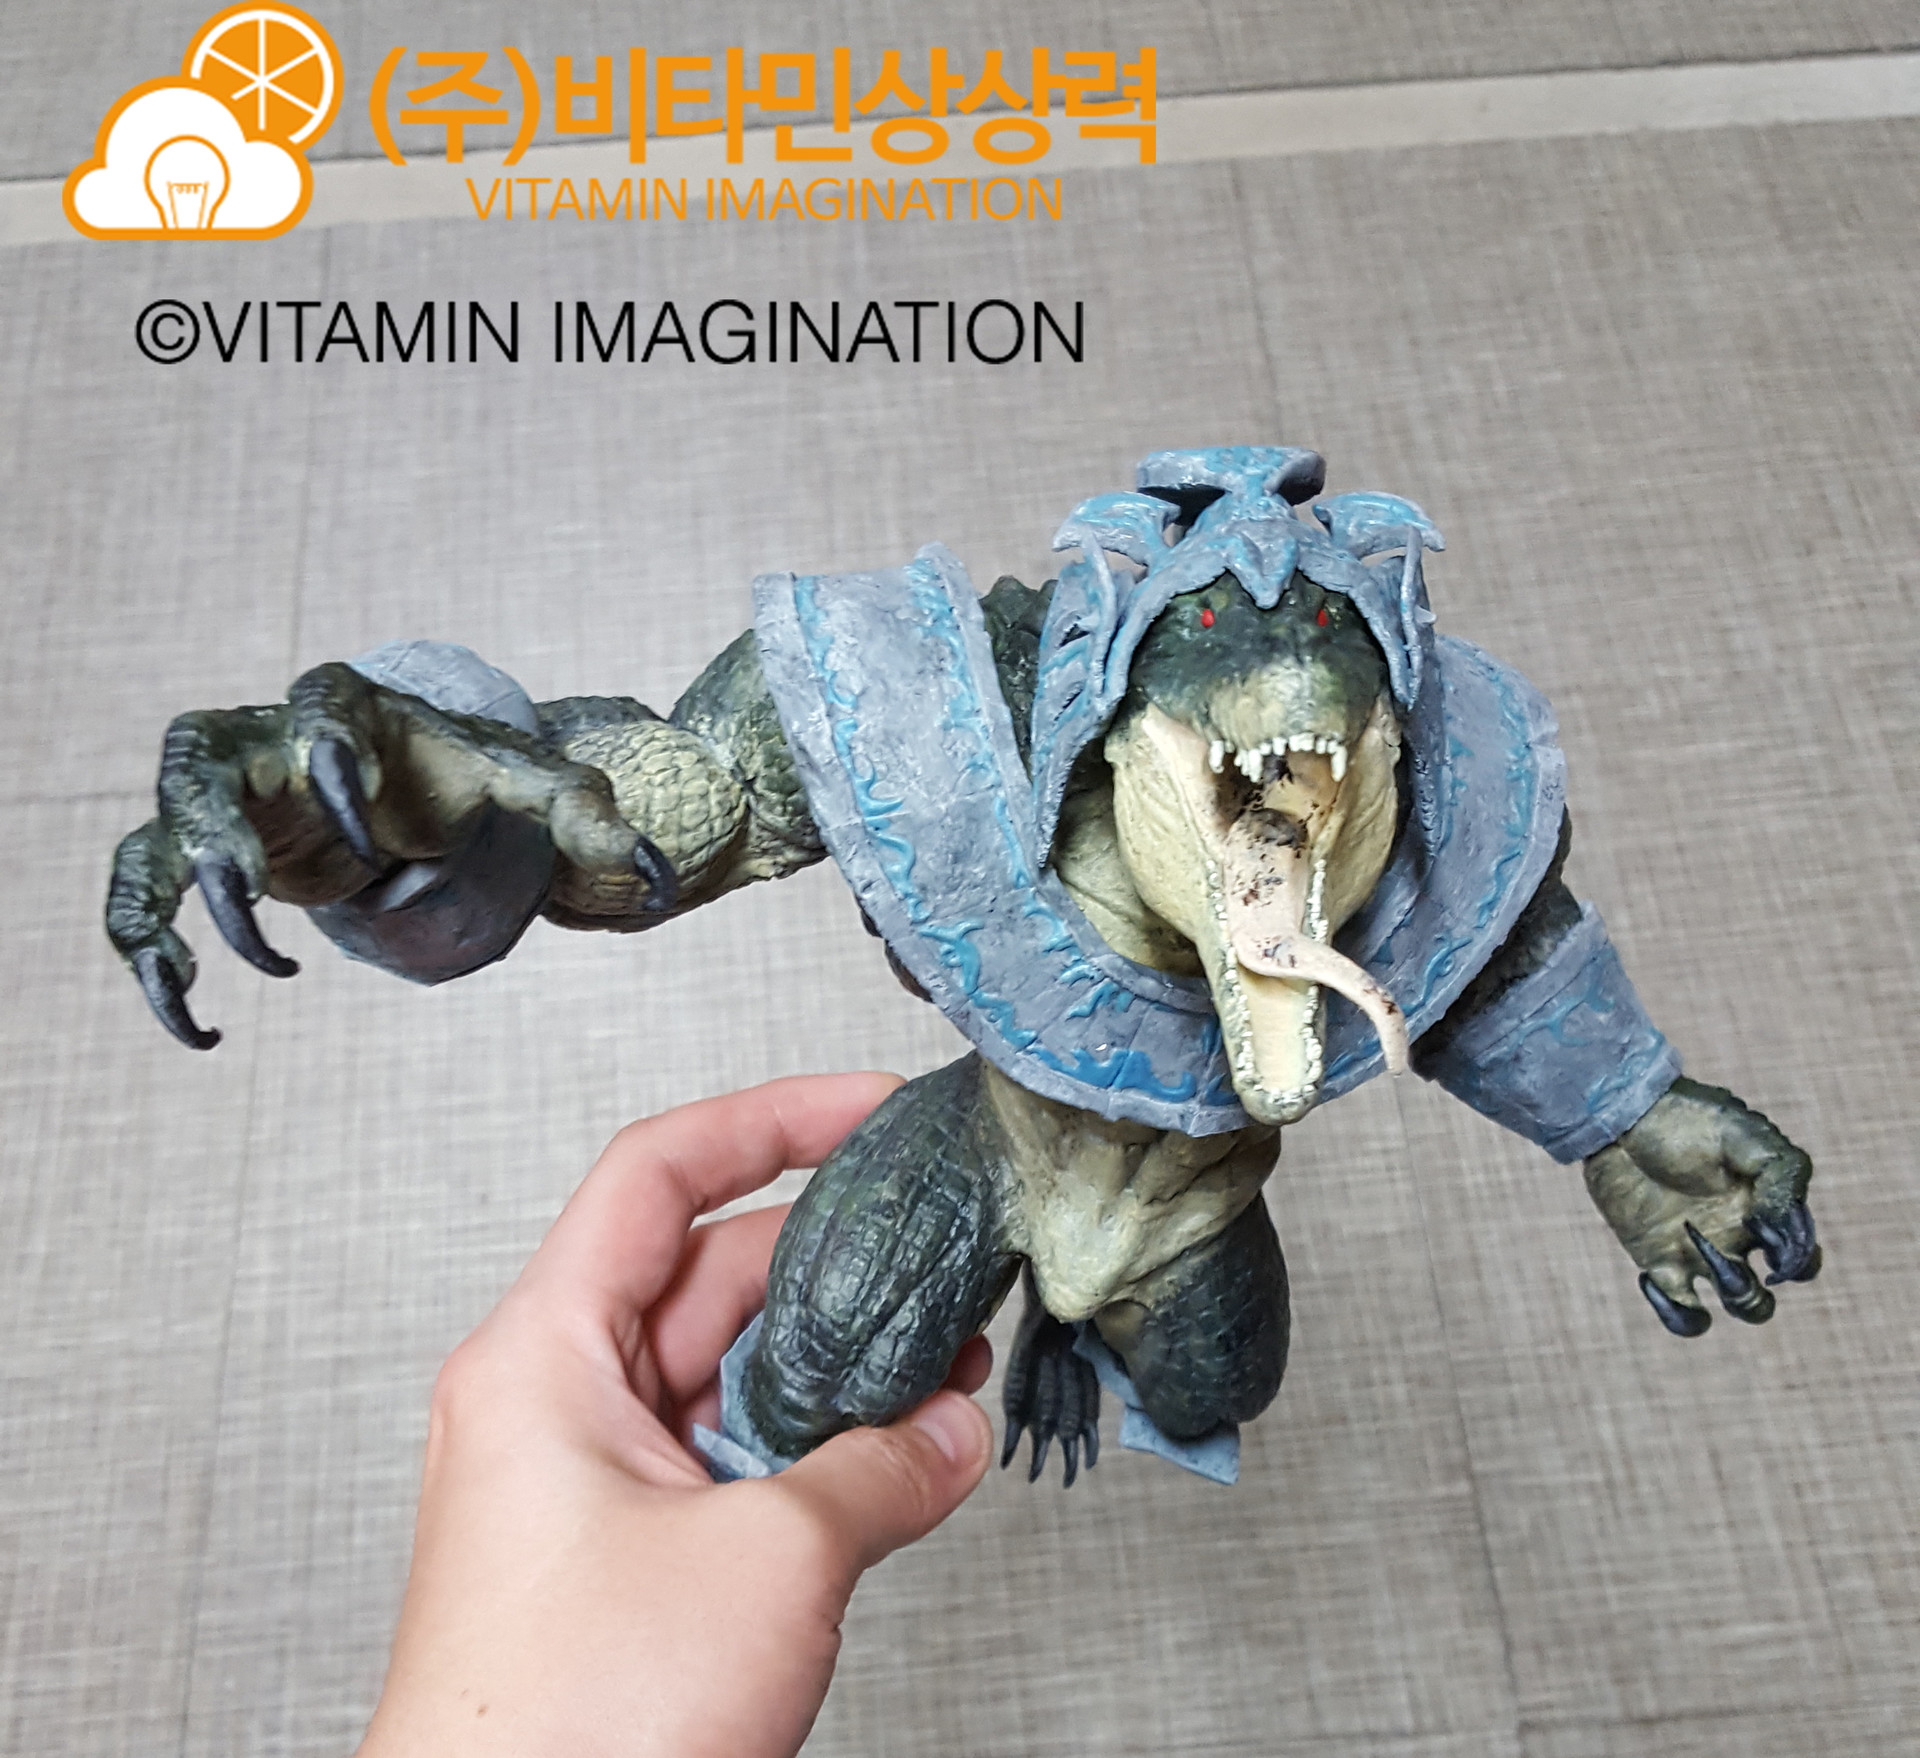 Vitamin imagination 55